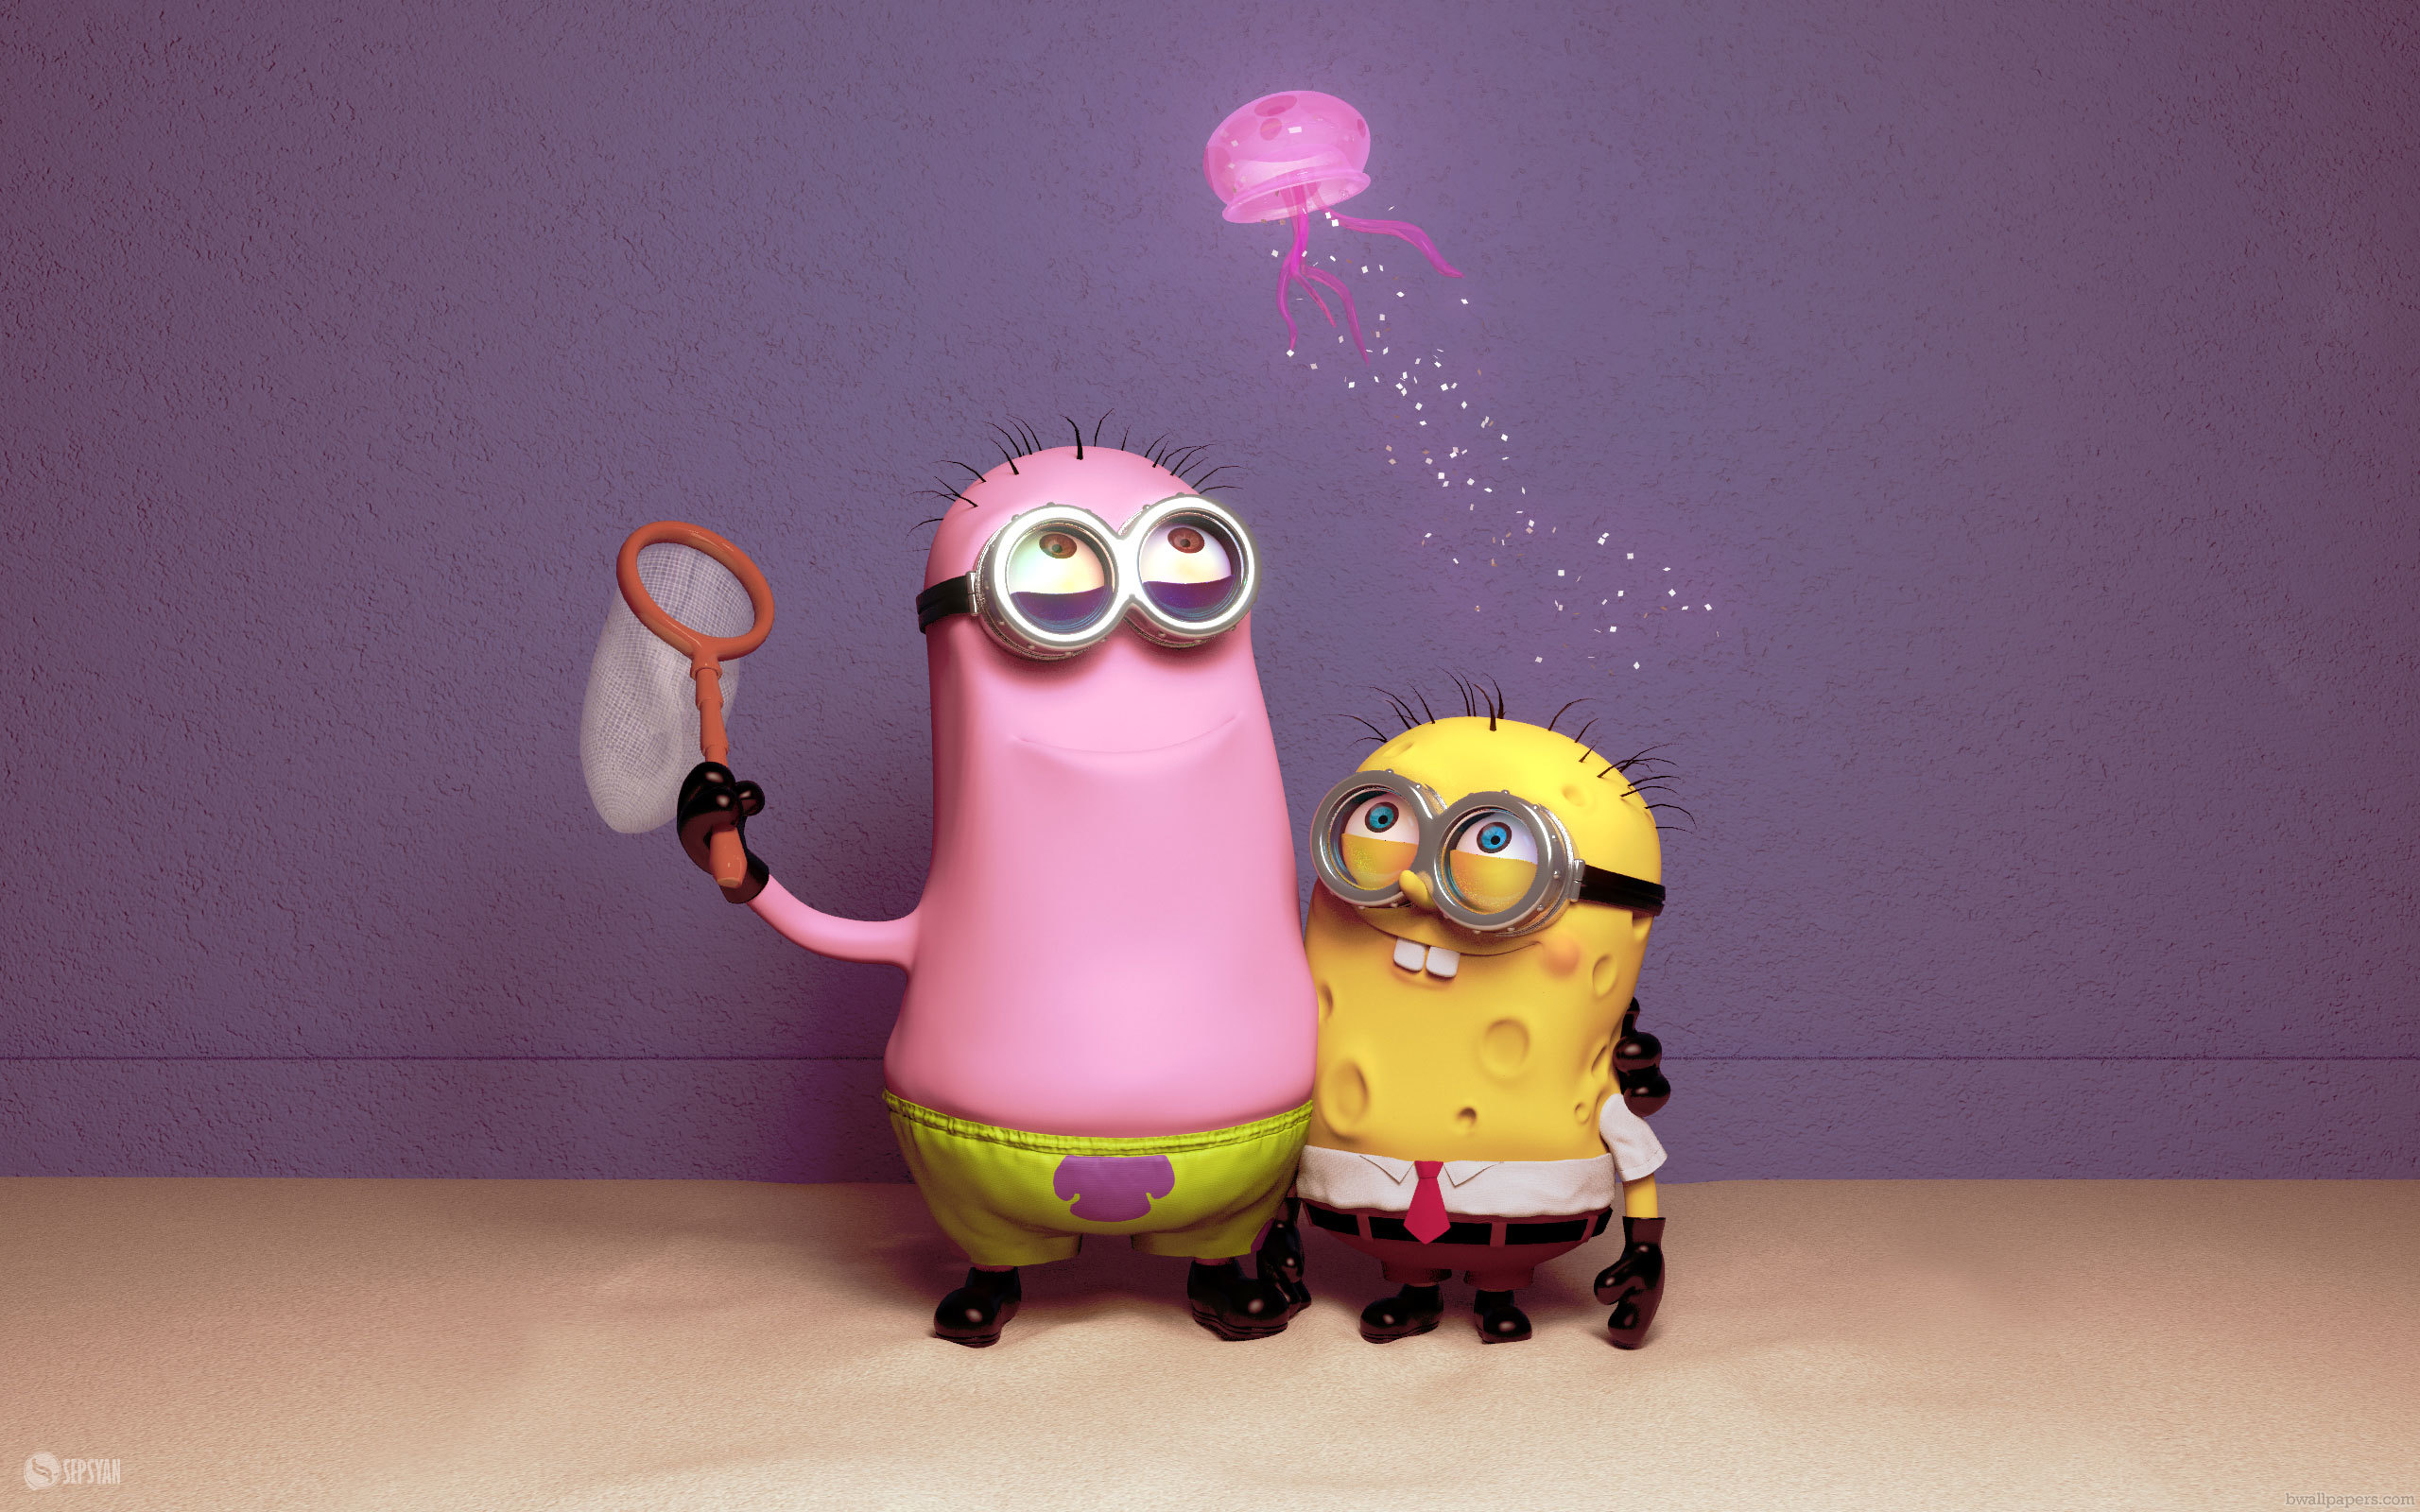 Funny Minions - Wallpaper, High - 676.5KB